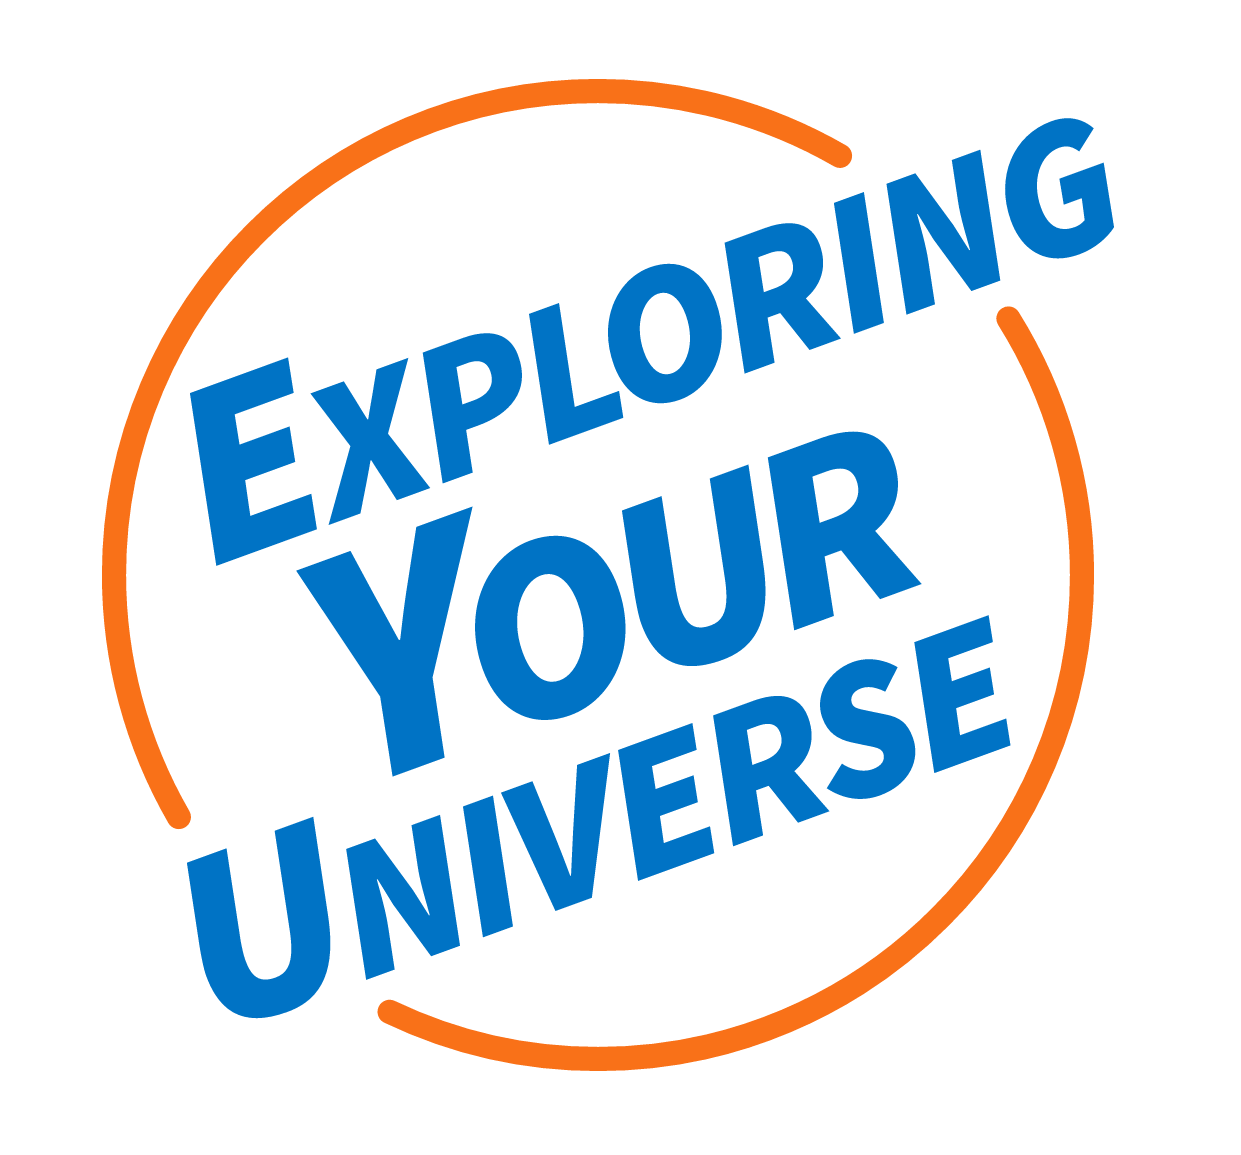 image for 'exploring-your-universe-2016' item